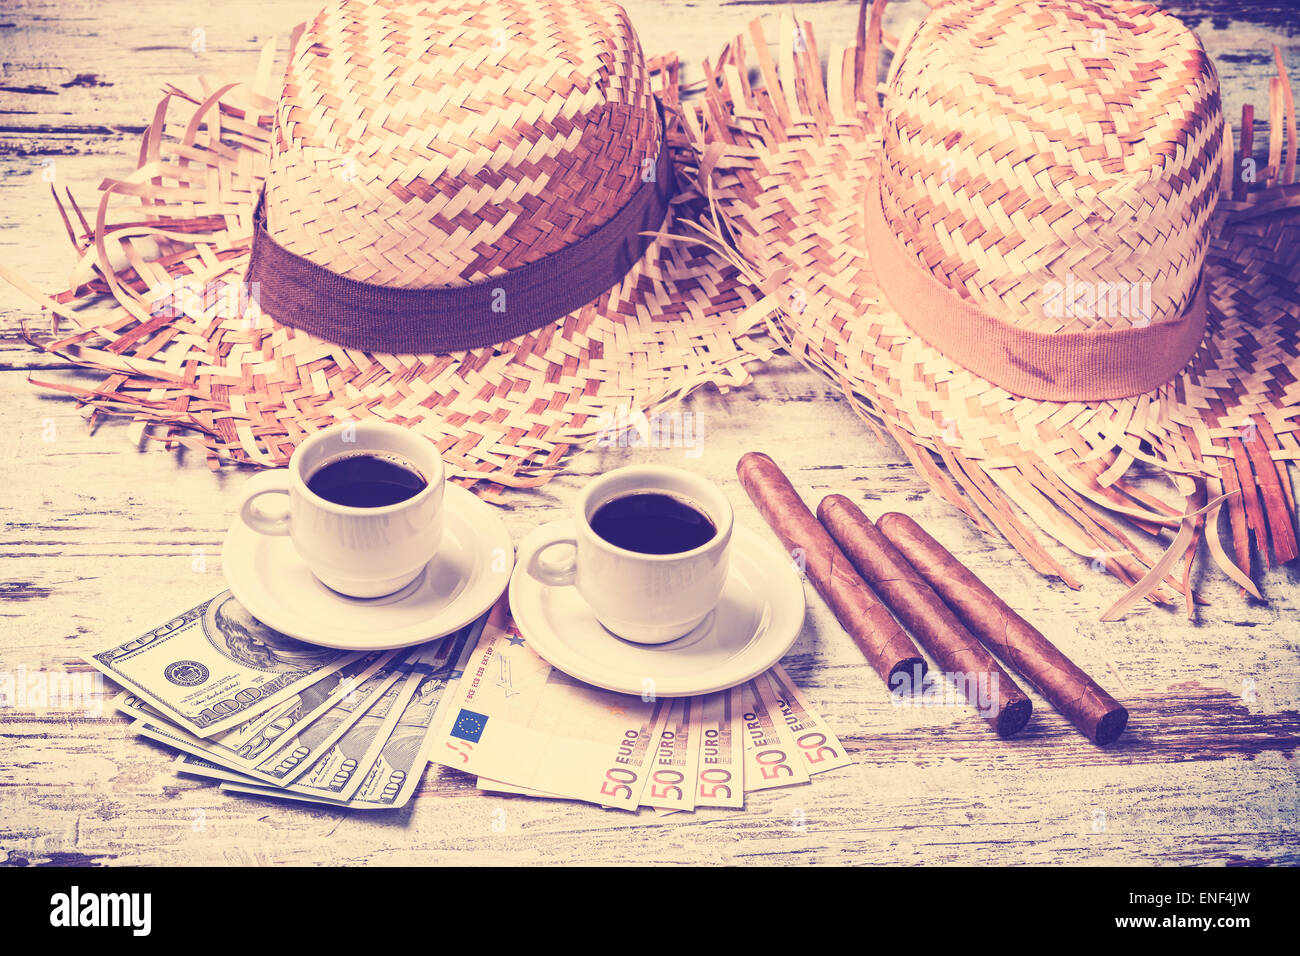 Vintage filtered coffees, cigars, money and hats. Summer adventure concept. - Stock Image